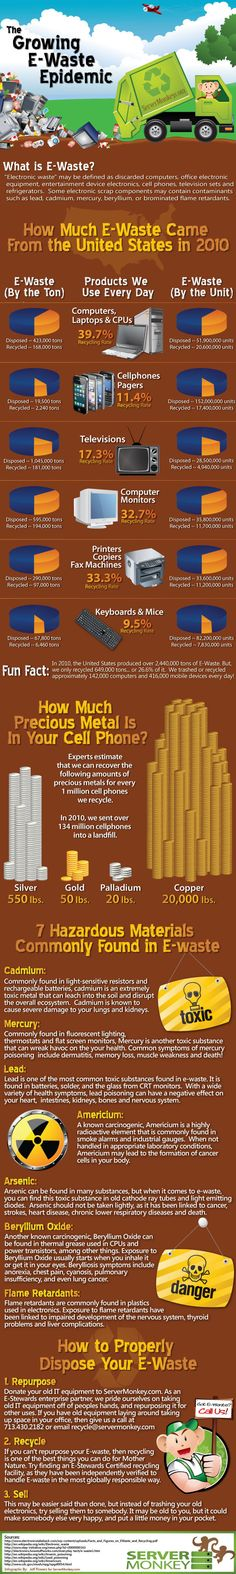 INFOGRAPHIC: How Much E-Waste The United States Produced in 2010